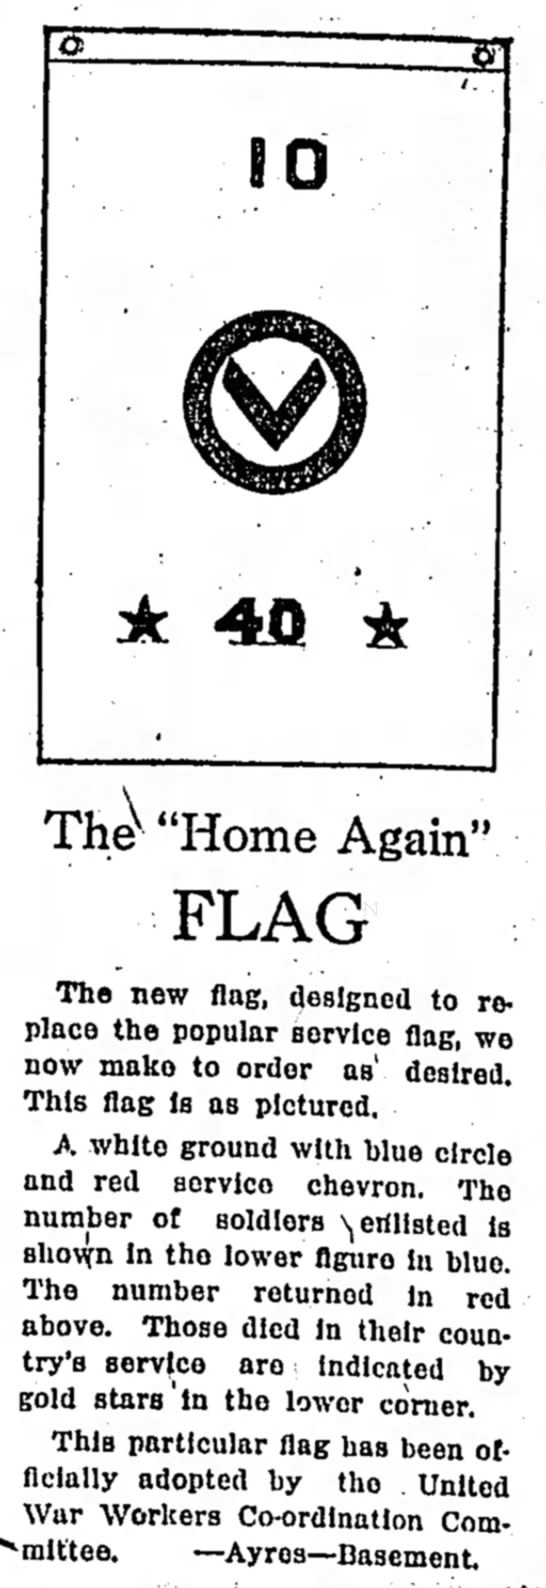 The Home Again Flag, The Indianapolis Star, 2 March 1919, p. 40.